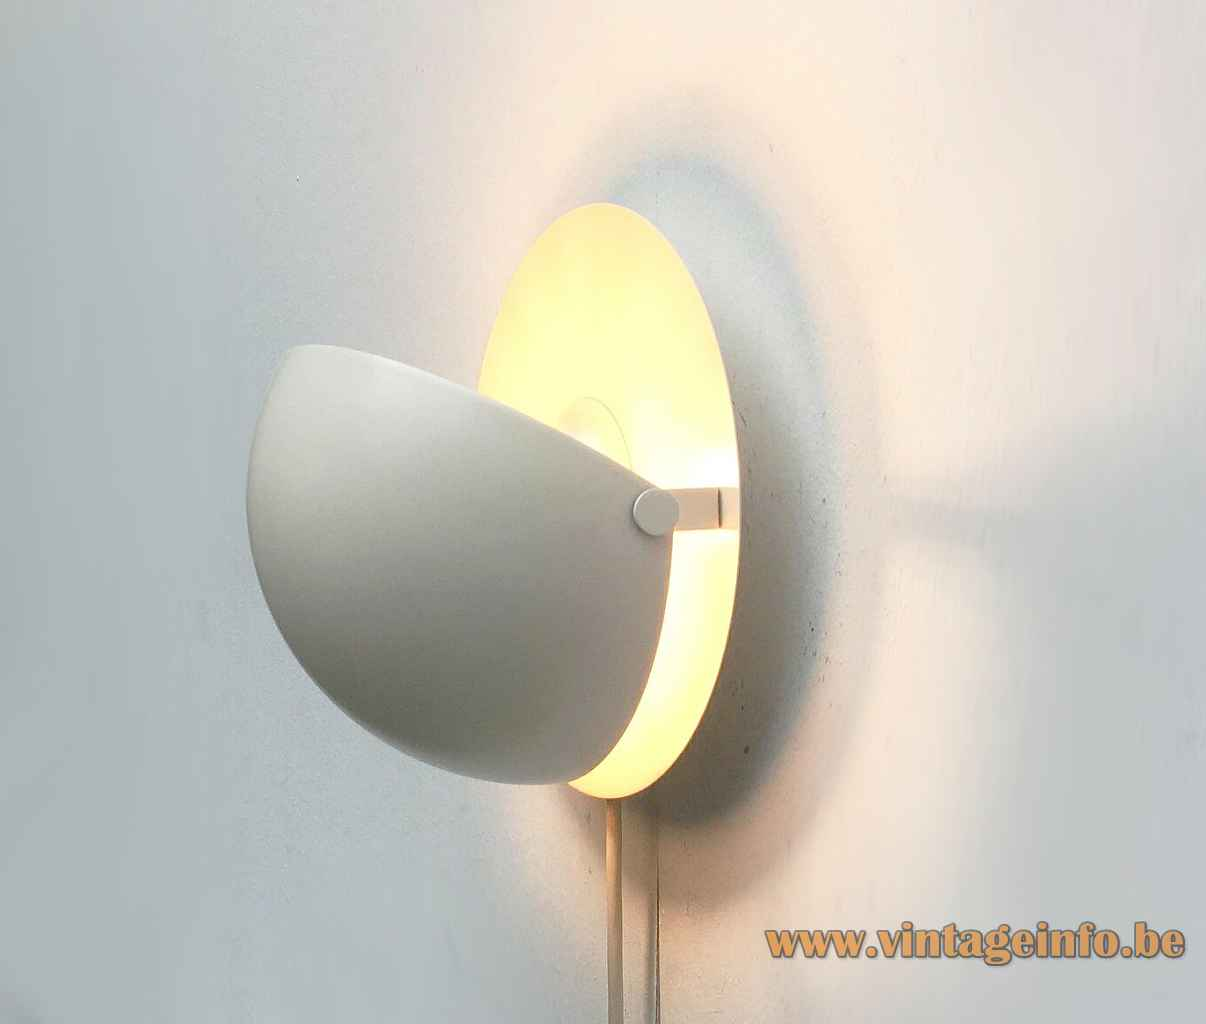 Cosack eclipse wall lamp white metal base adjustable half round lampshade 1960s 1970s Germany E27 socket